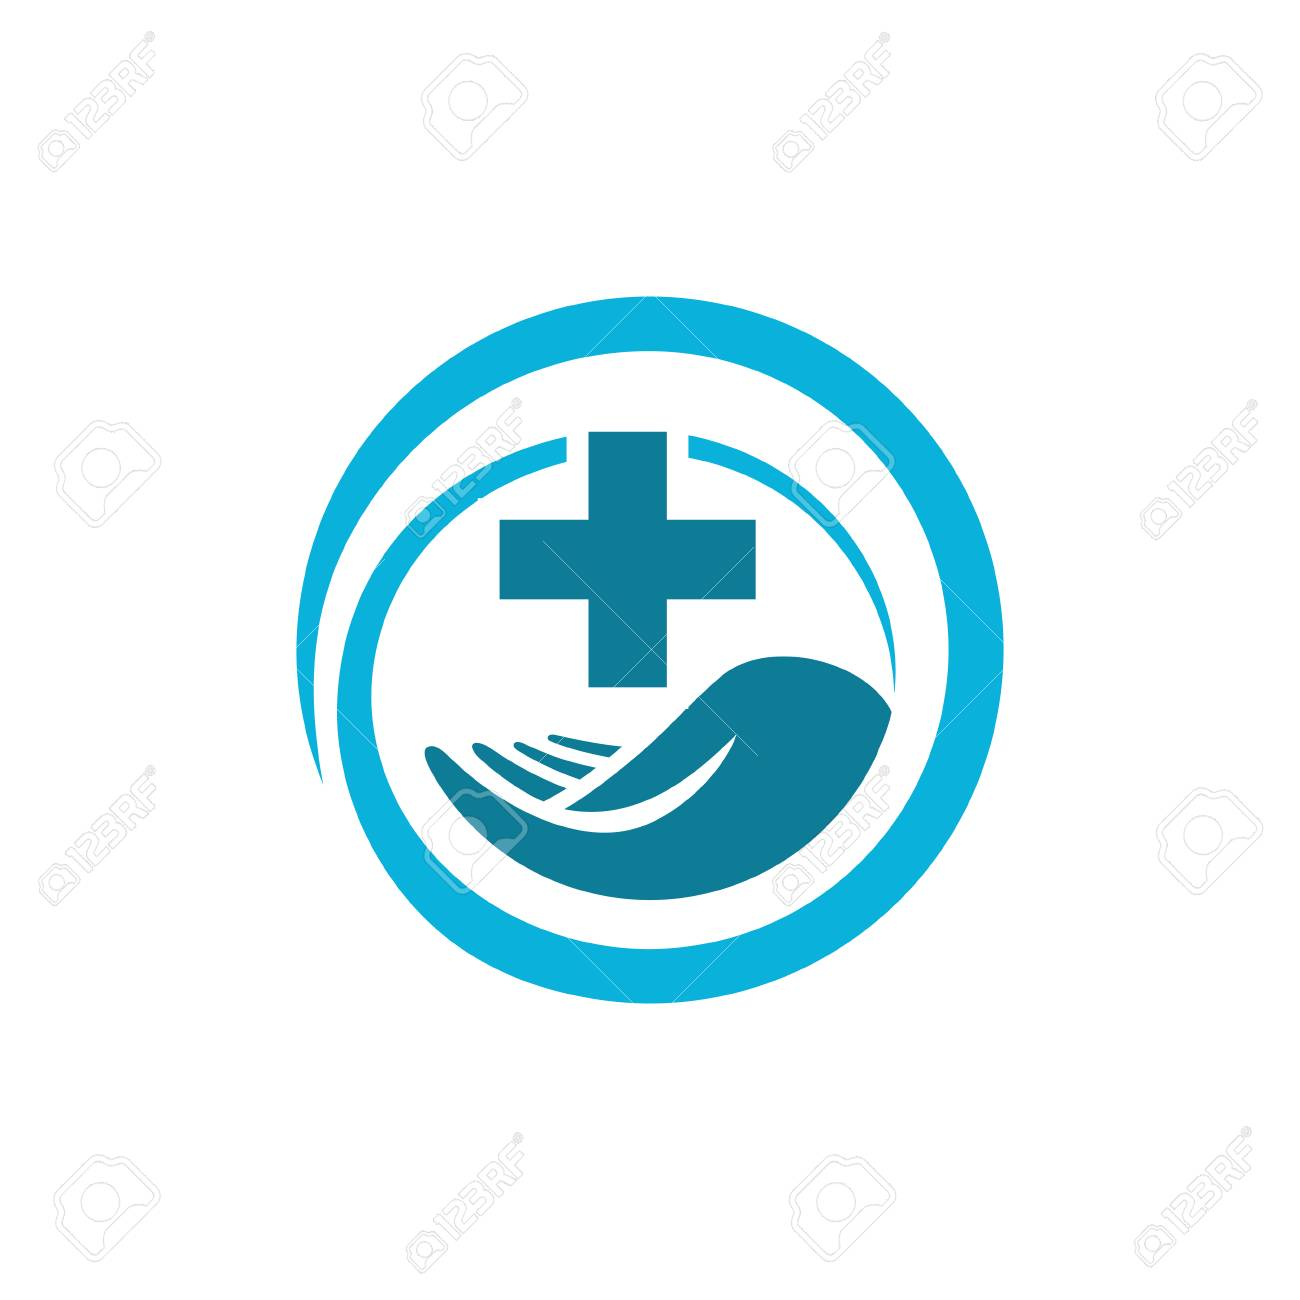 Vector Medical Health Icon Symbol Care Royalty Free Cliparts Vectors And Stock Illustration Image 99975011